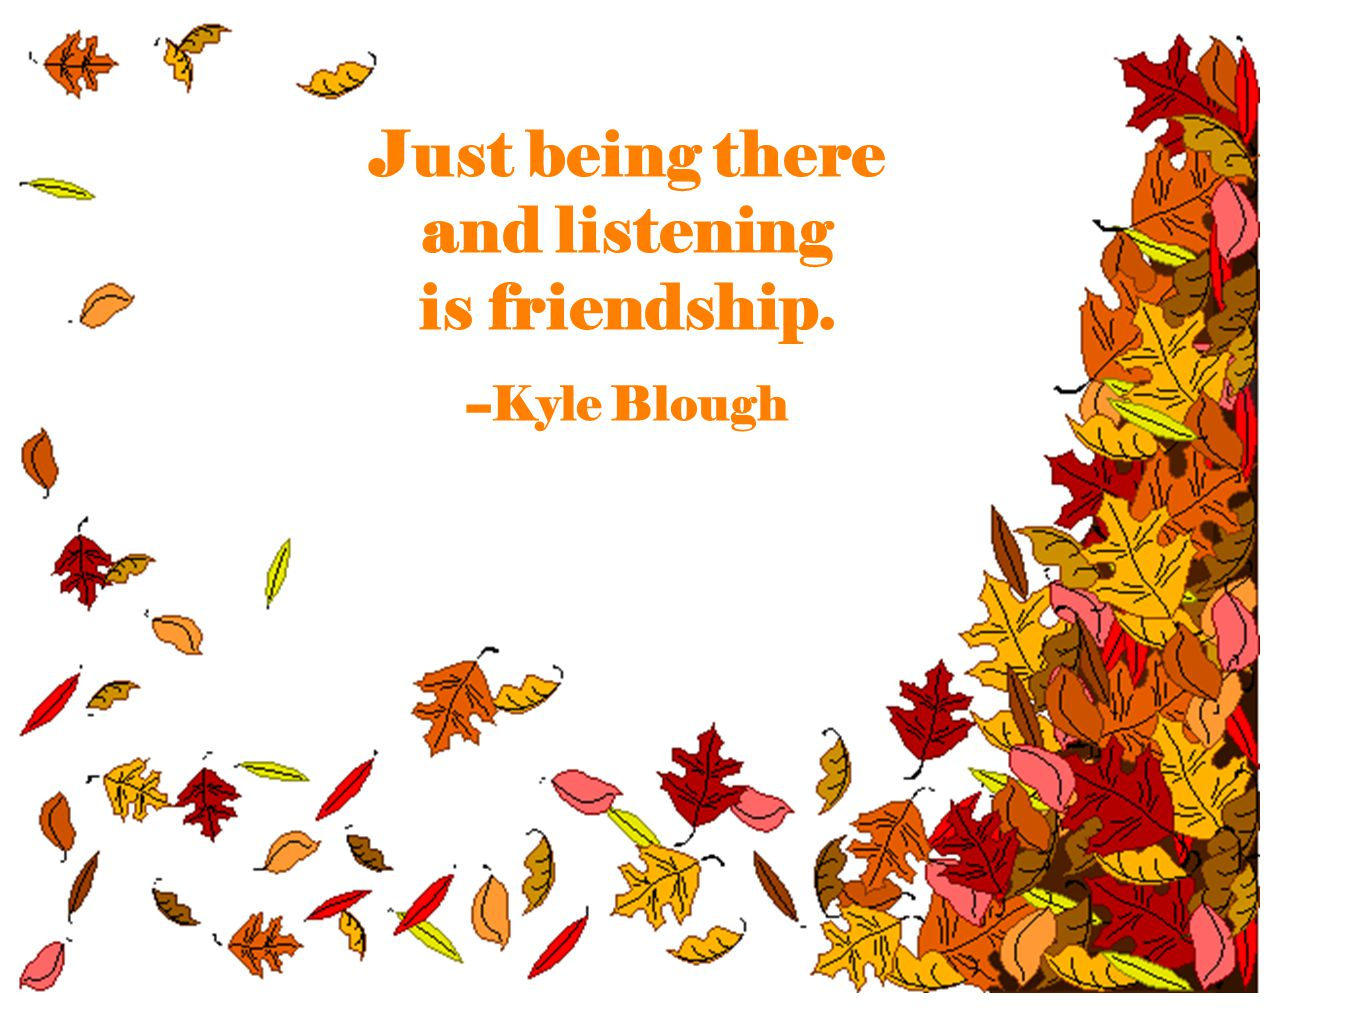 Just being there and listening is friendship. --Kyle Blough